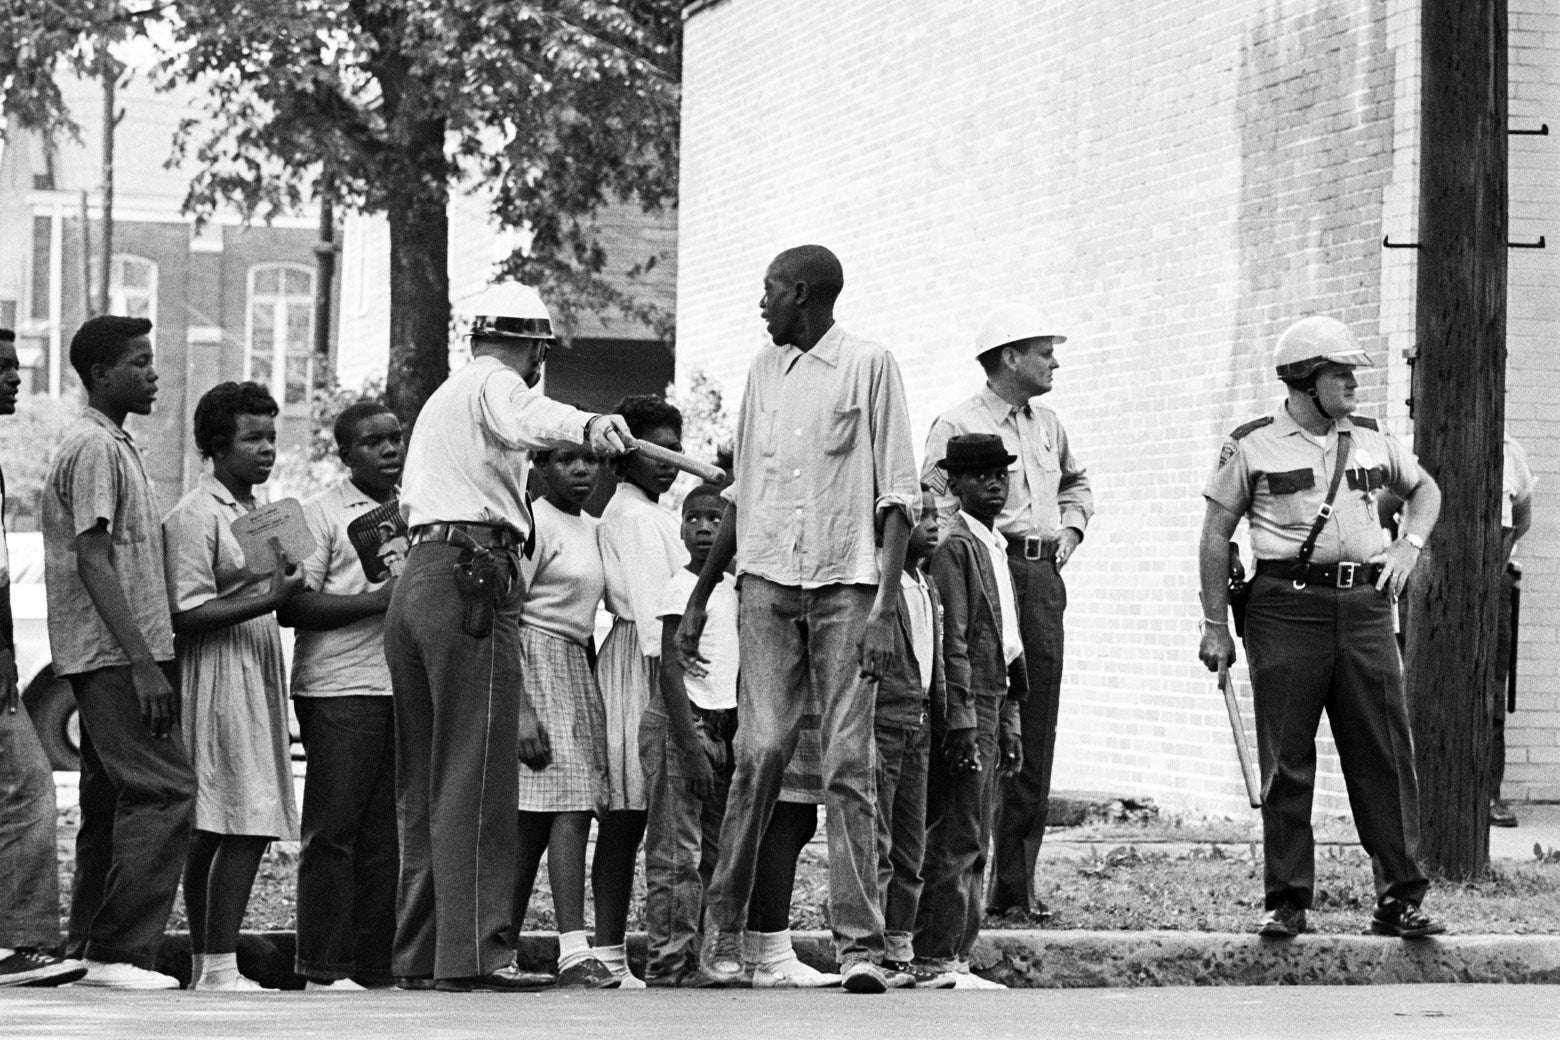 Children participating in a civil rights protest wait for a police van to take them to jail in Birmingham, Alabama, in 1963.